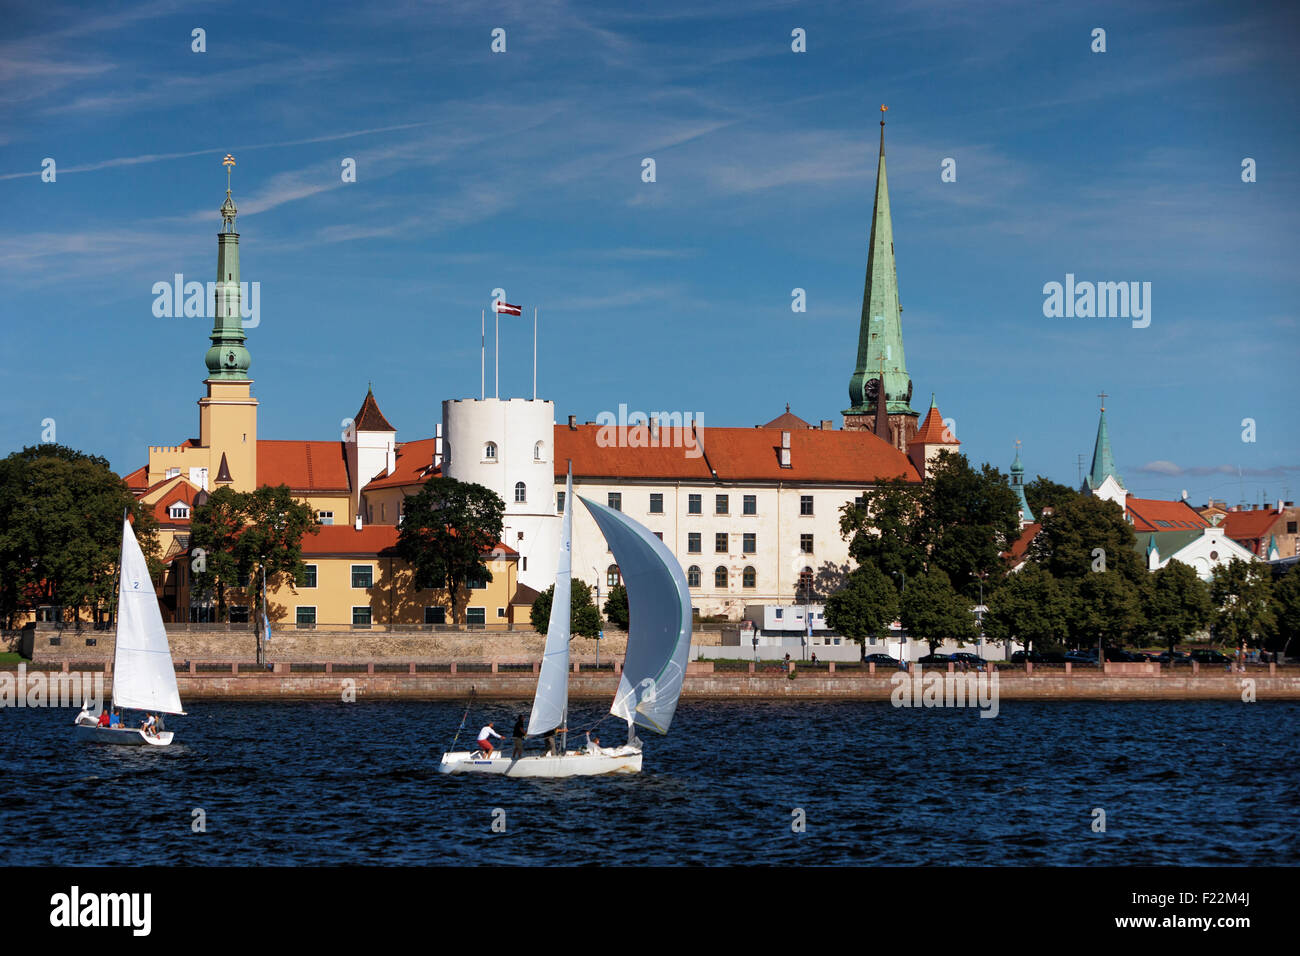 Latvia, Riga - august, 14.The yacht with a sail at the triangle cable-stayed bridge in Riga on the background of - Stock Image